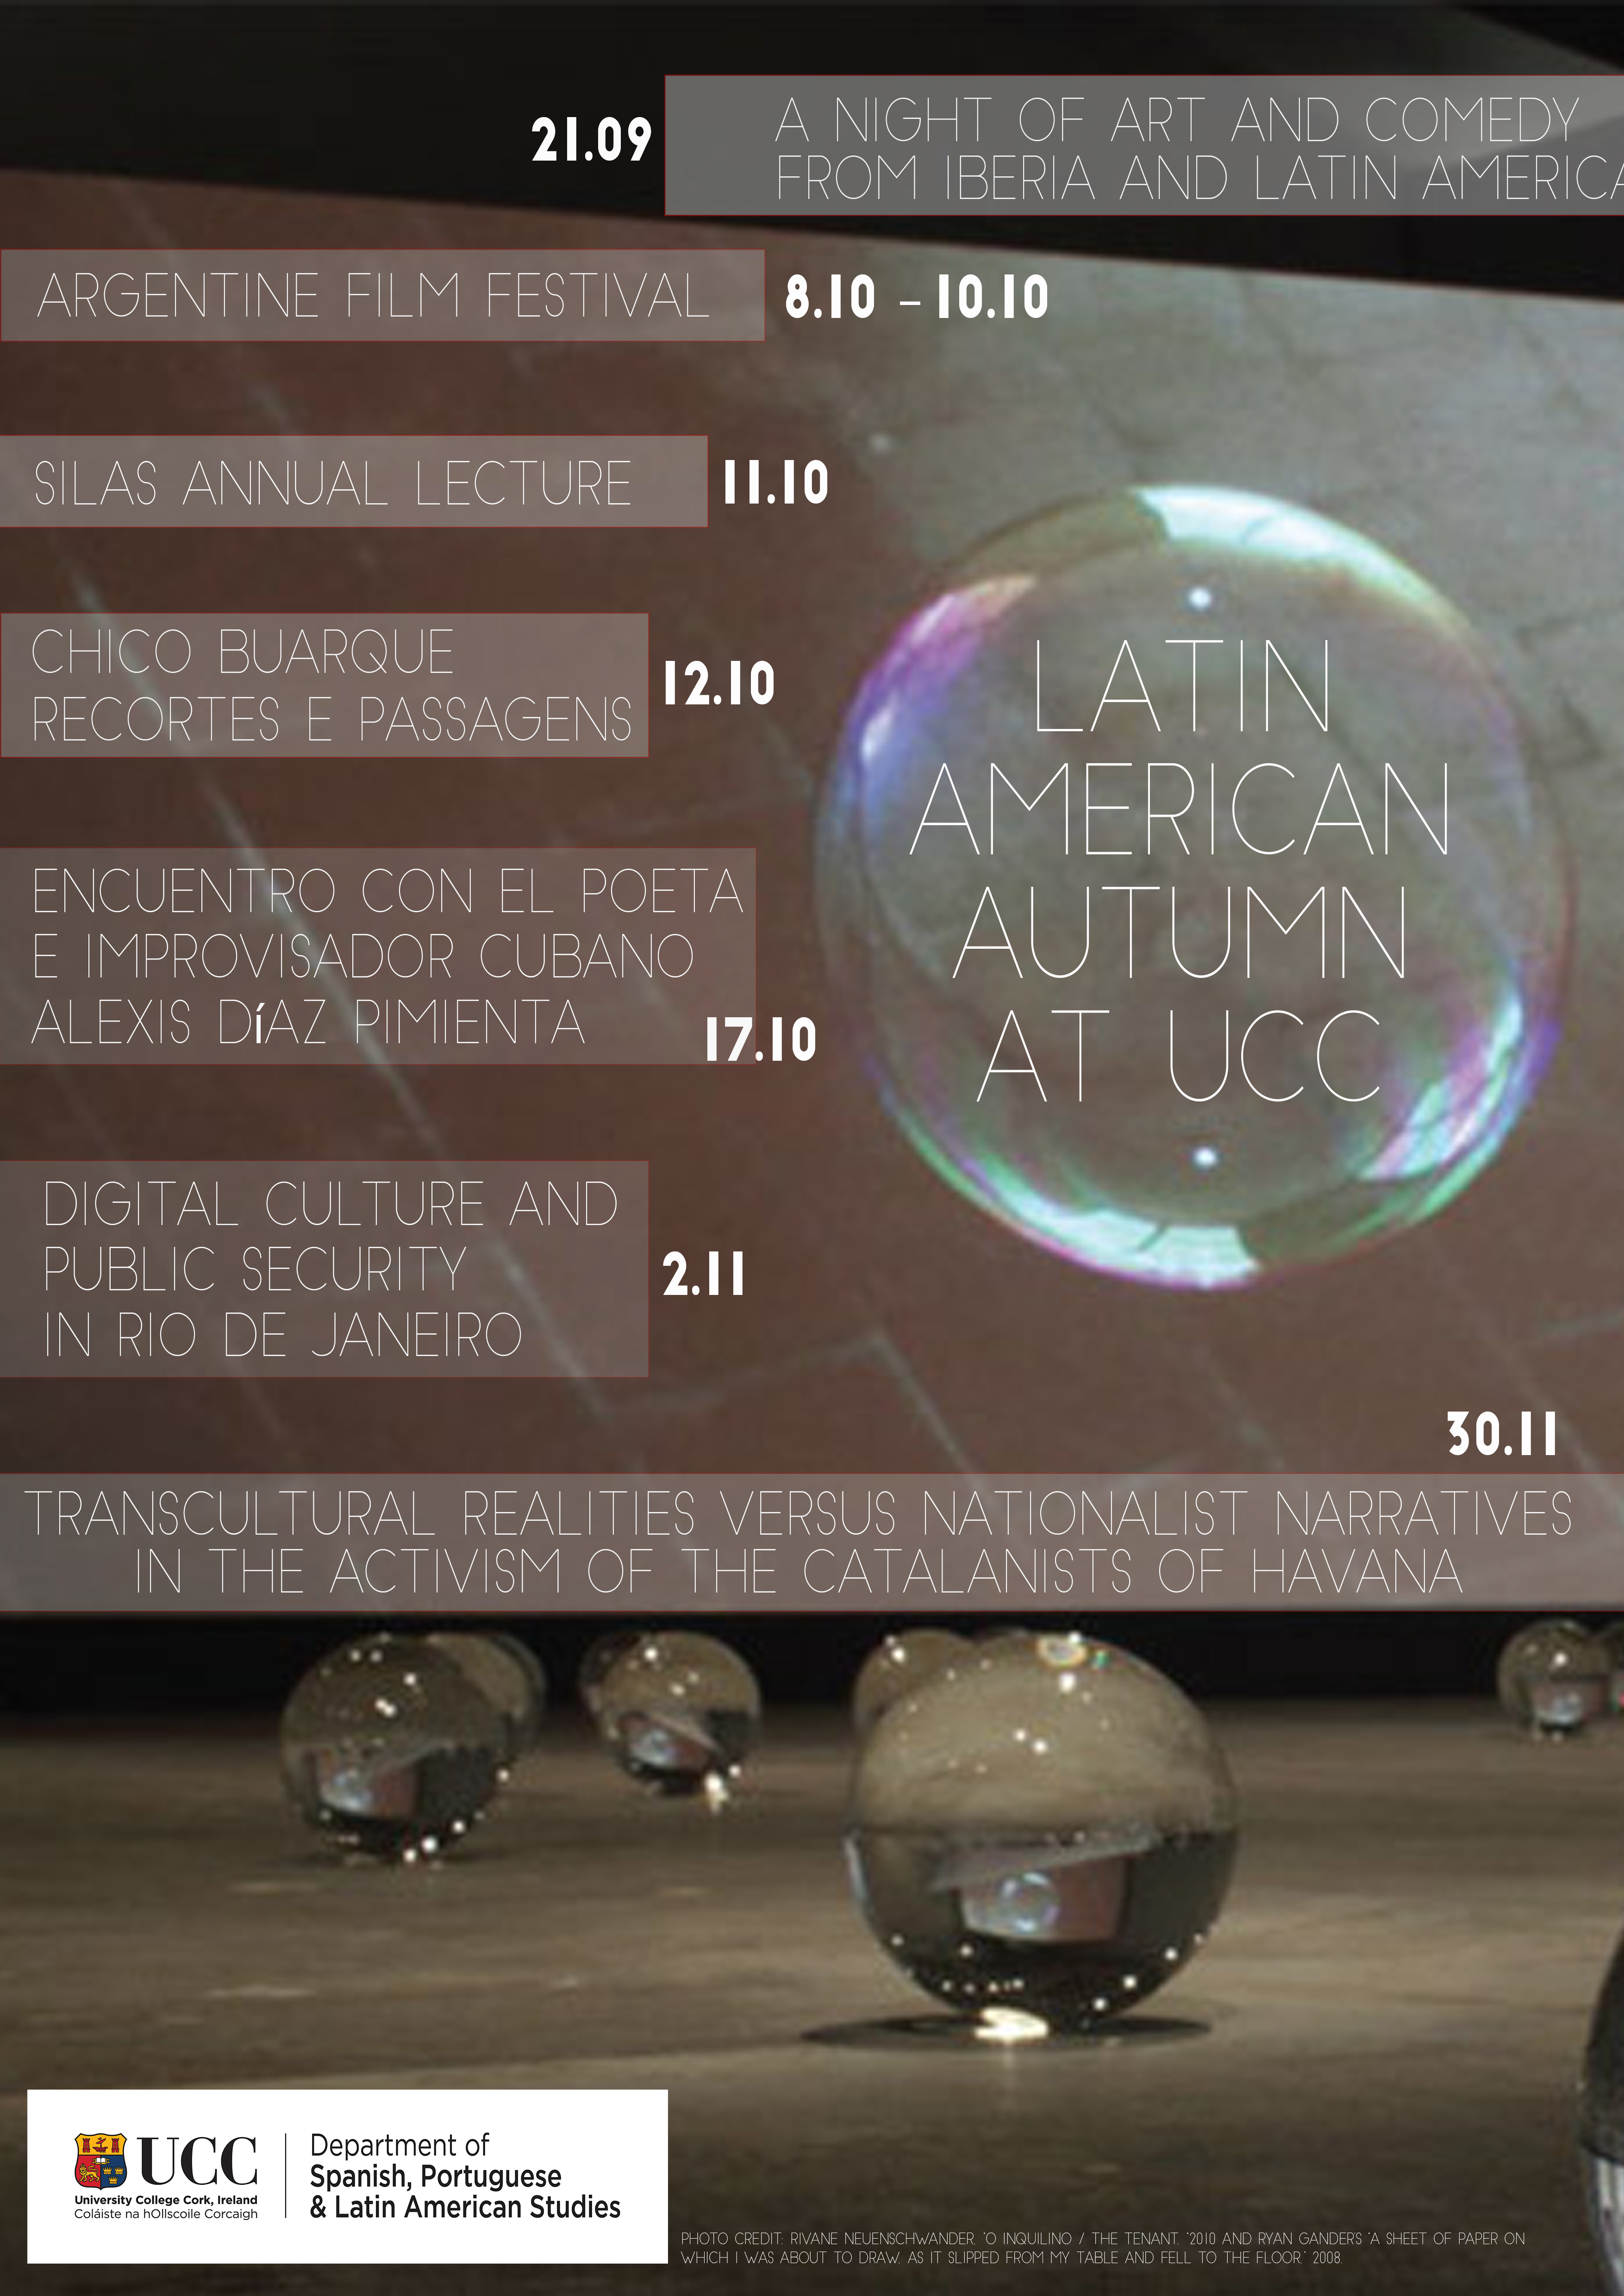 Latin American Autumn at UCC